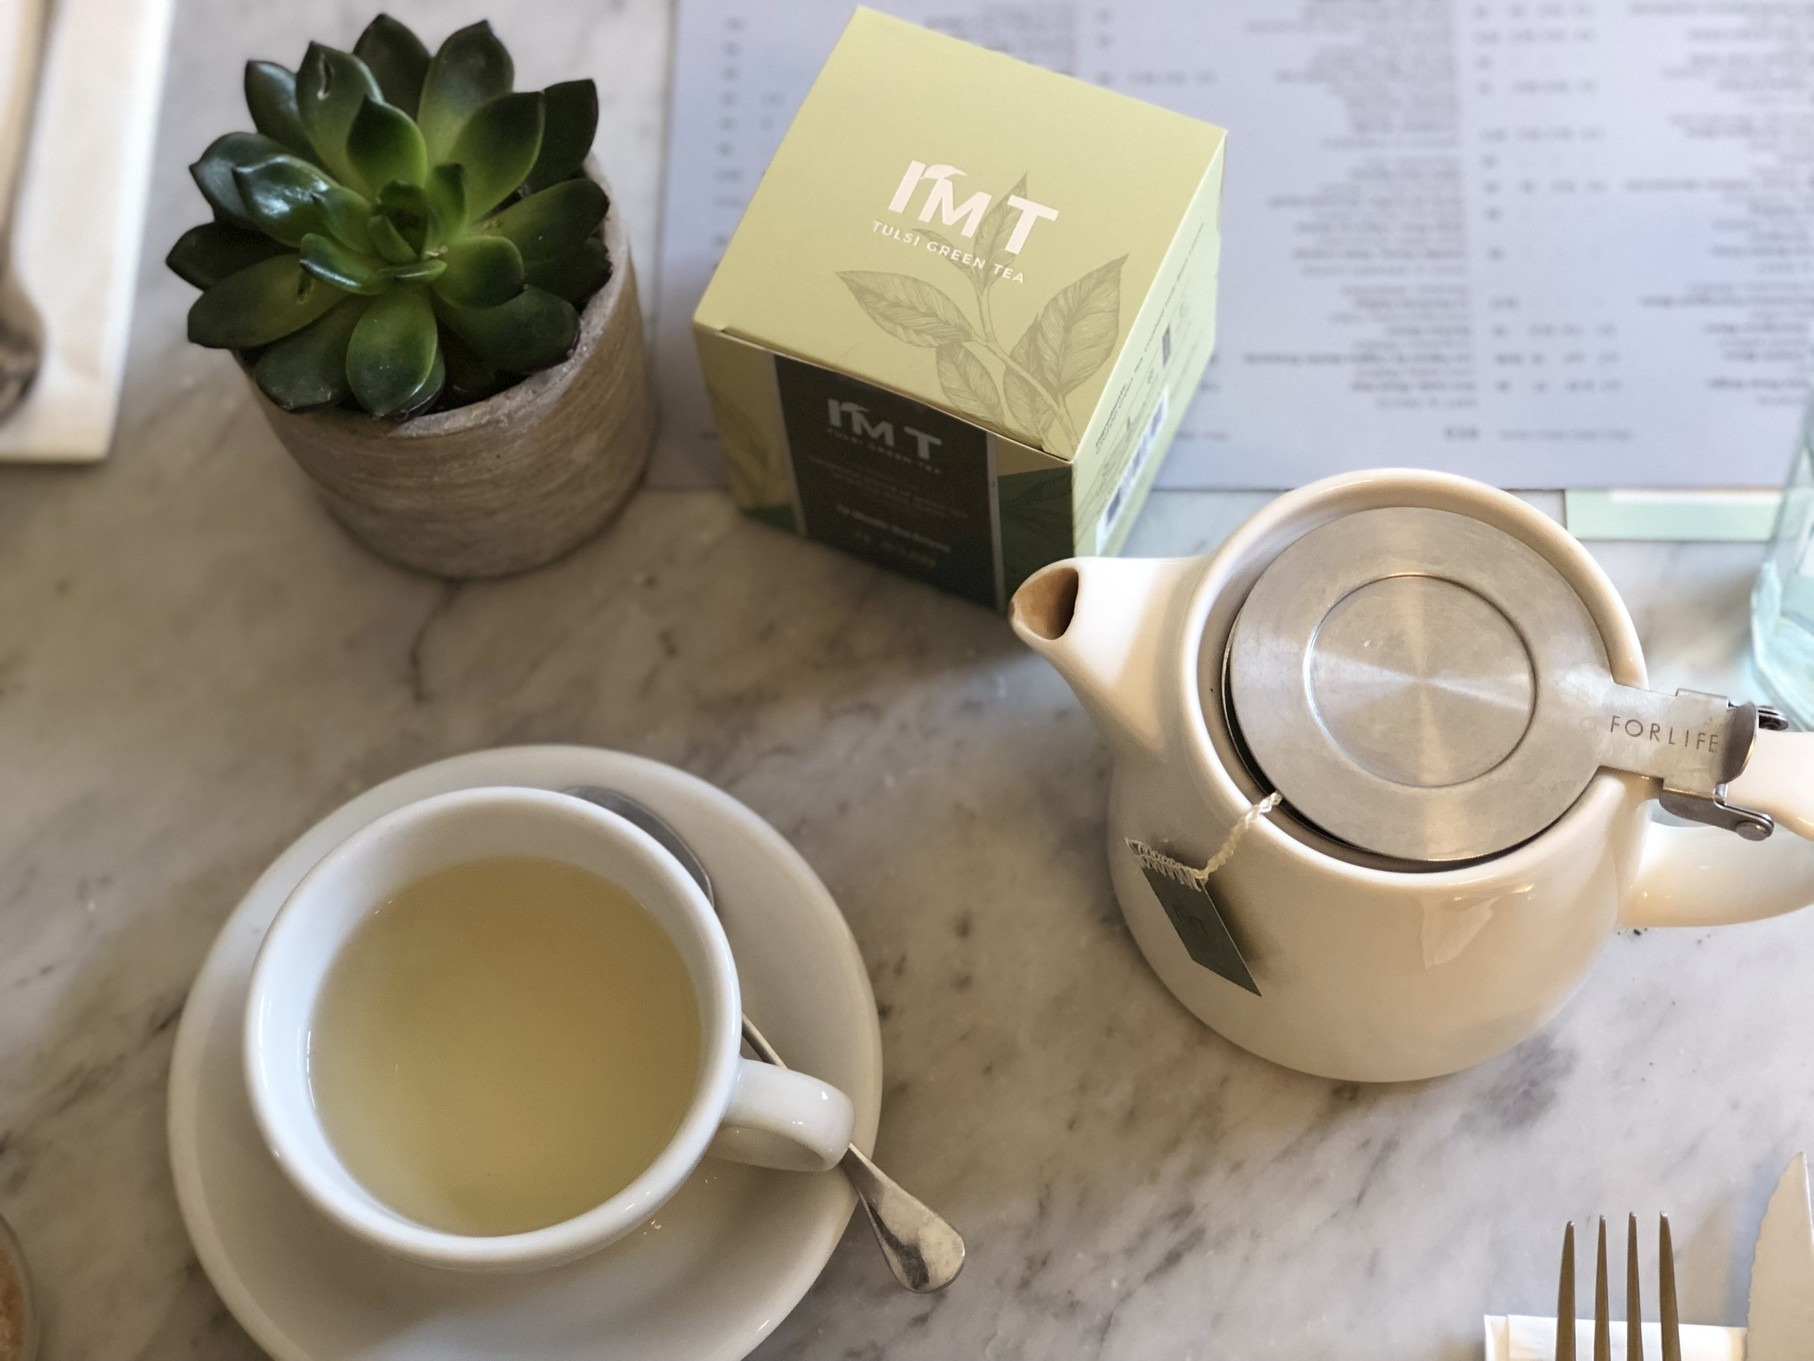 I'M T by The House of Aran, Green Tea, Luxury Organic Tea, Wellbeing, Detox, Mindfulness